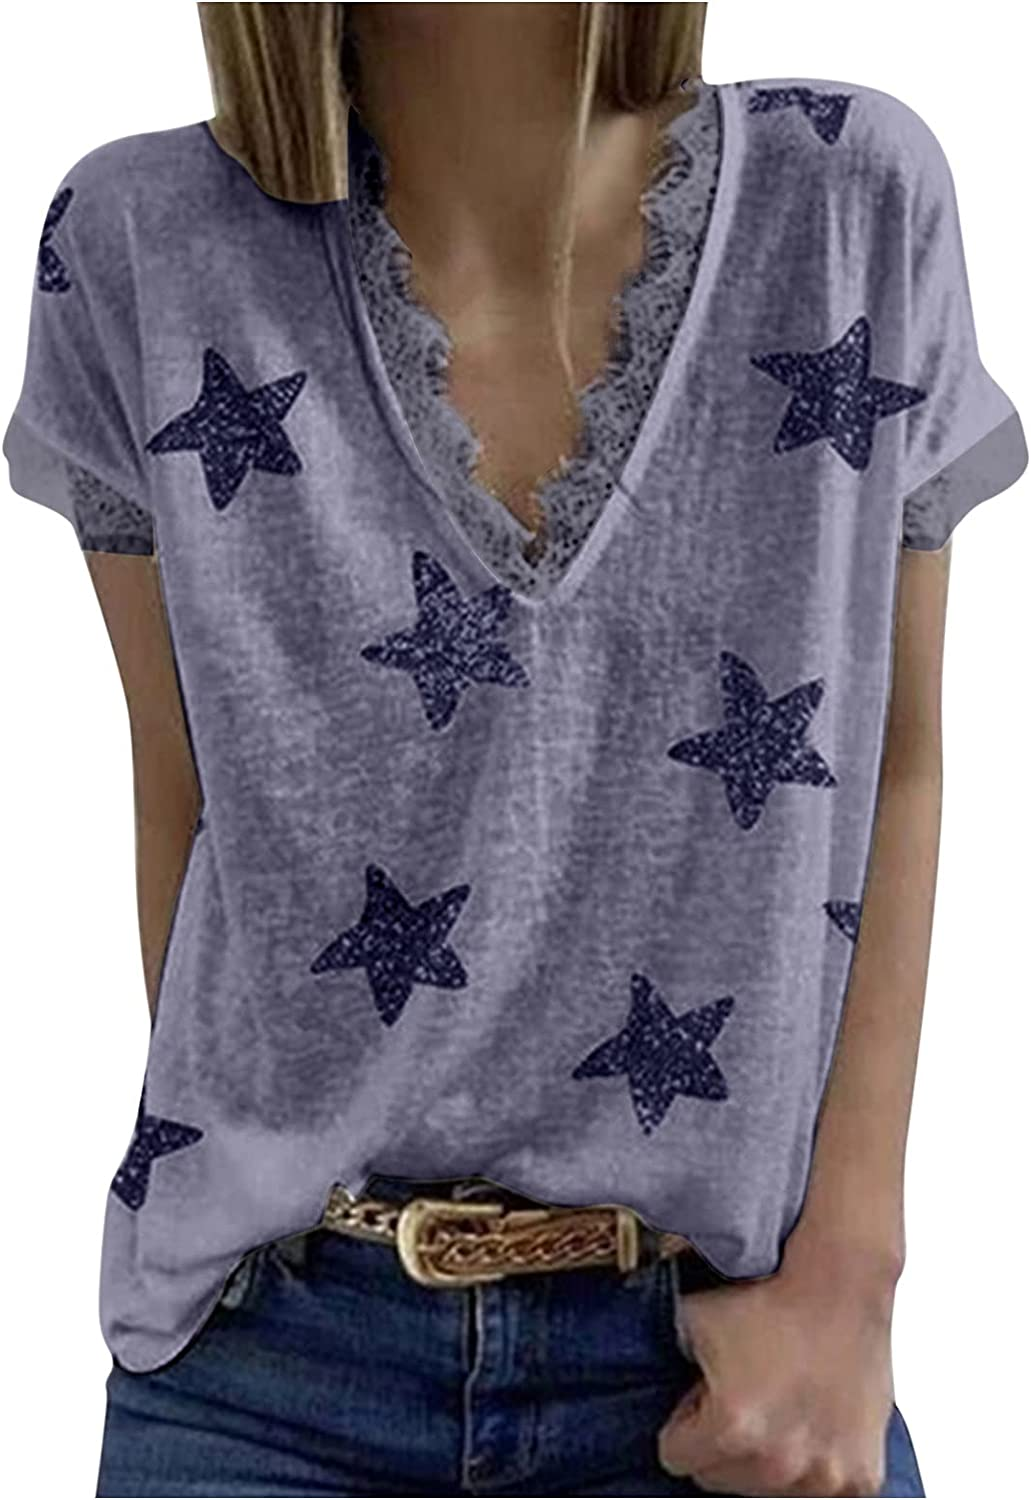 Women's Directly managed store Summer Tops T-Shirts Lace Print Shirts Patchwork Don't miss the campaign Cu Star